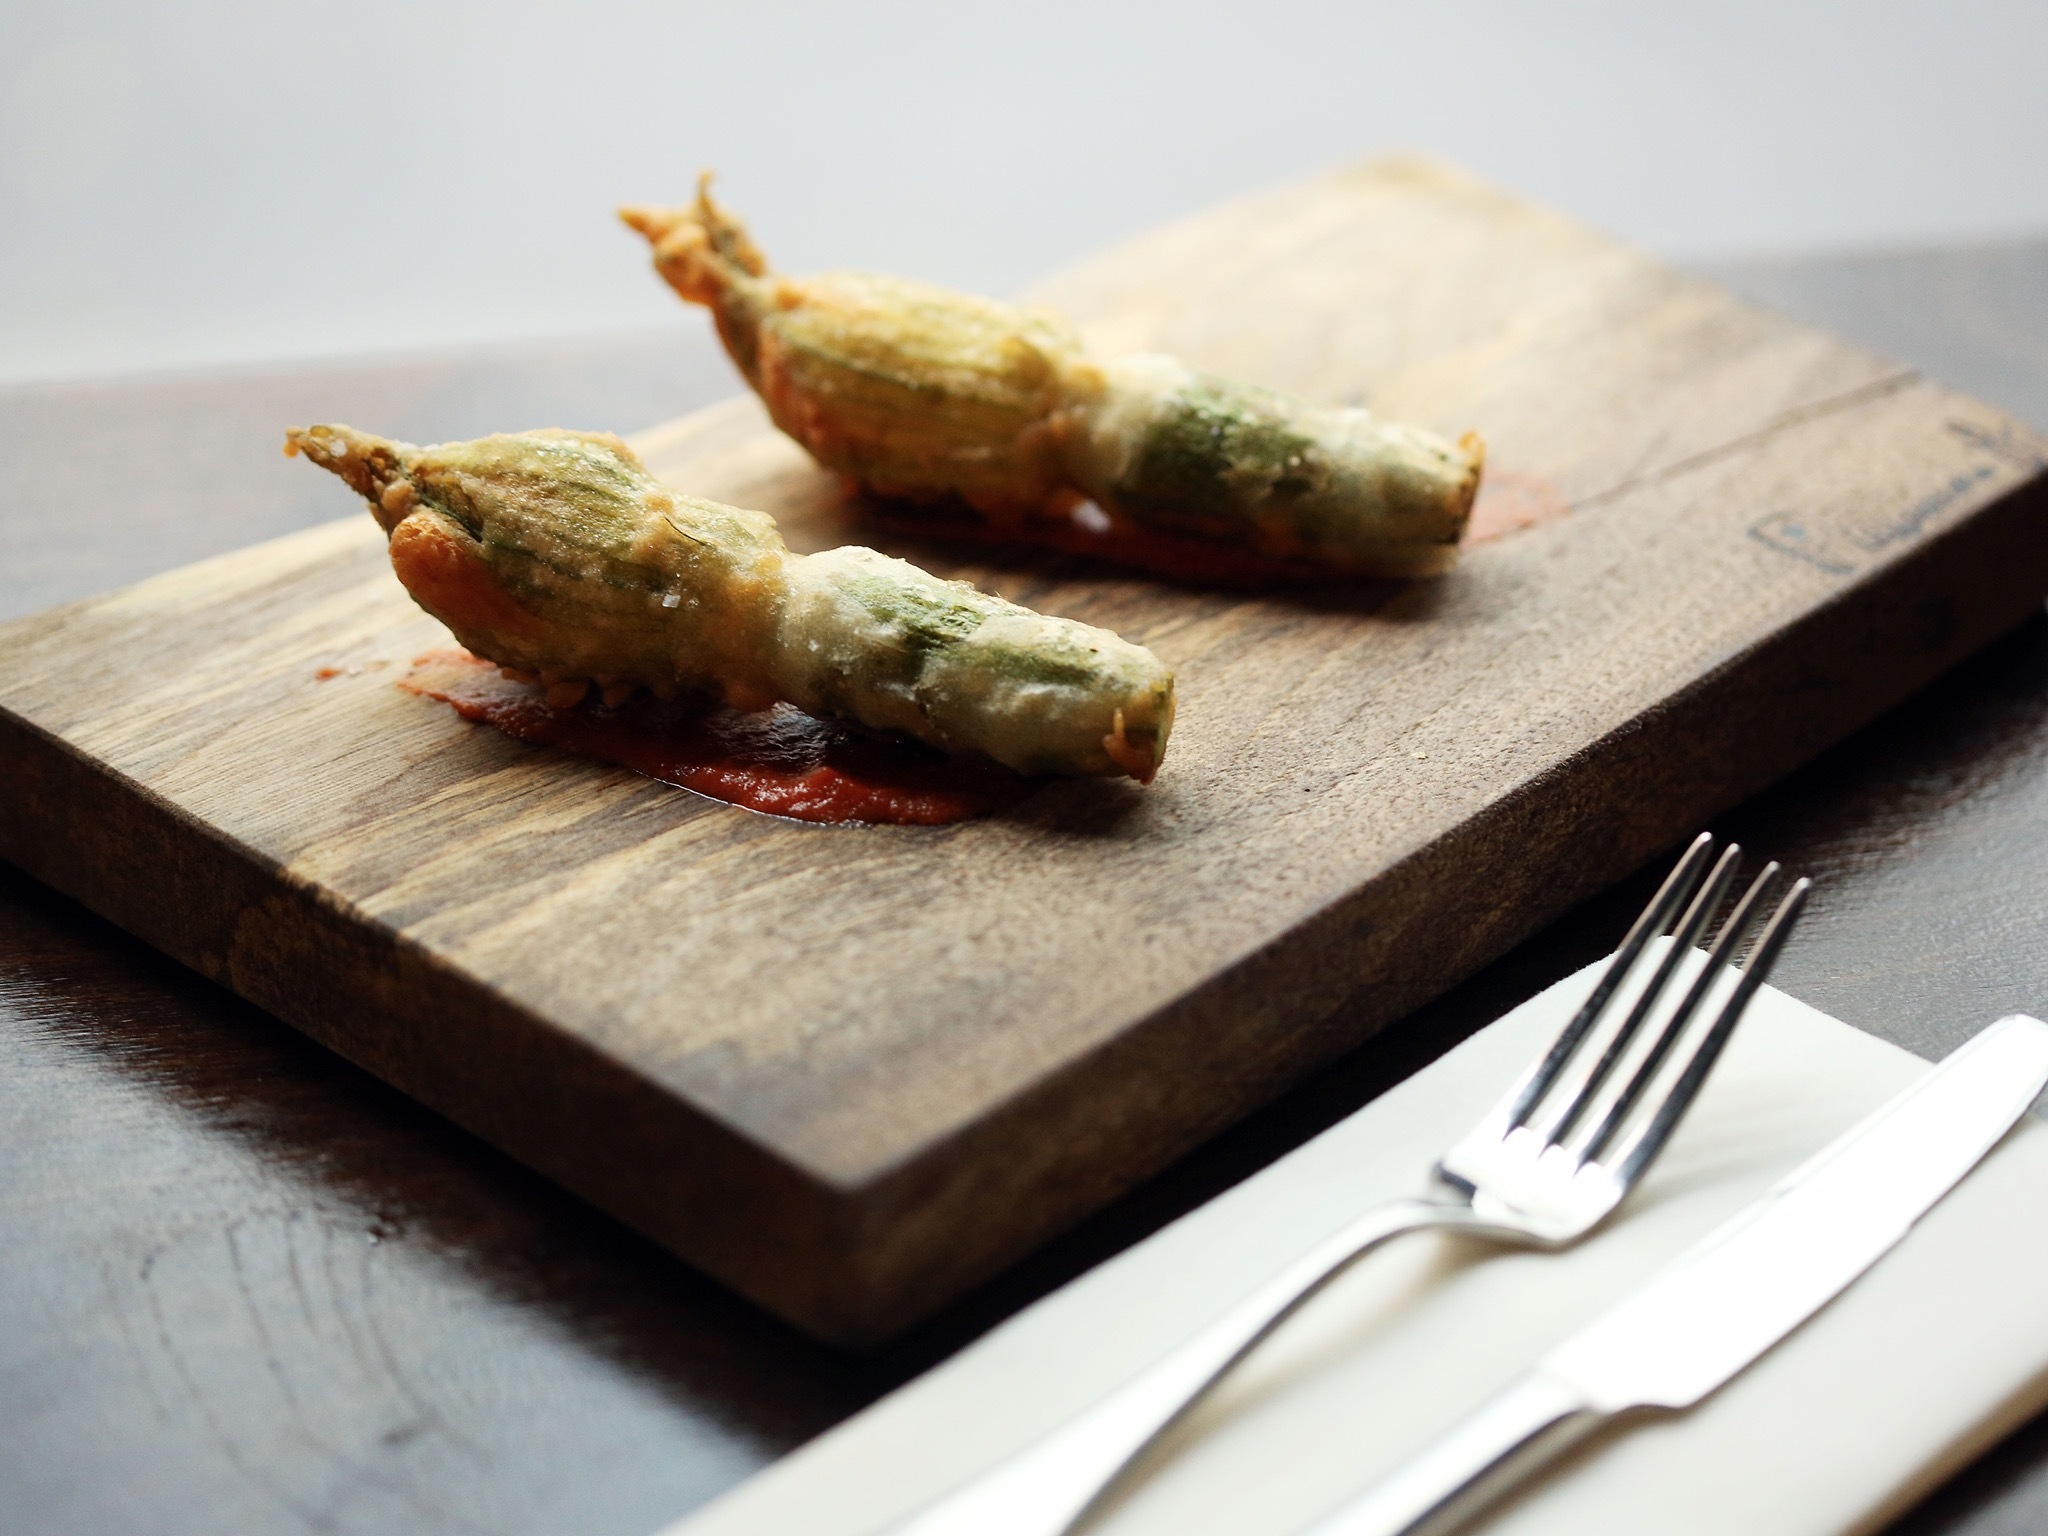 Fried zucchini flowers at tipo 00